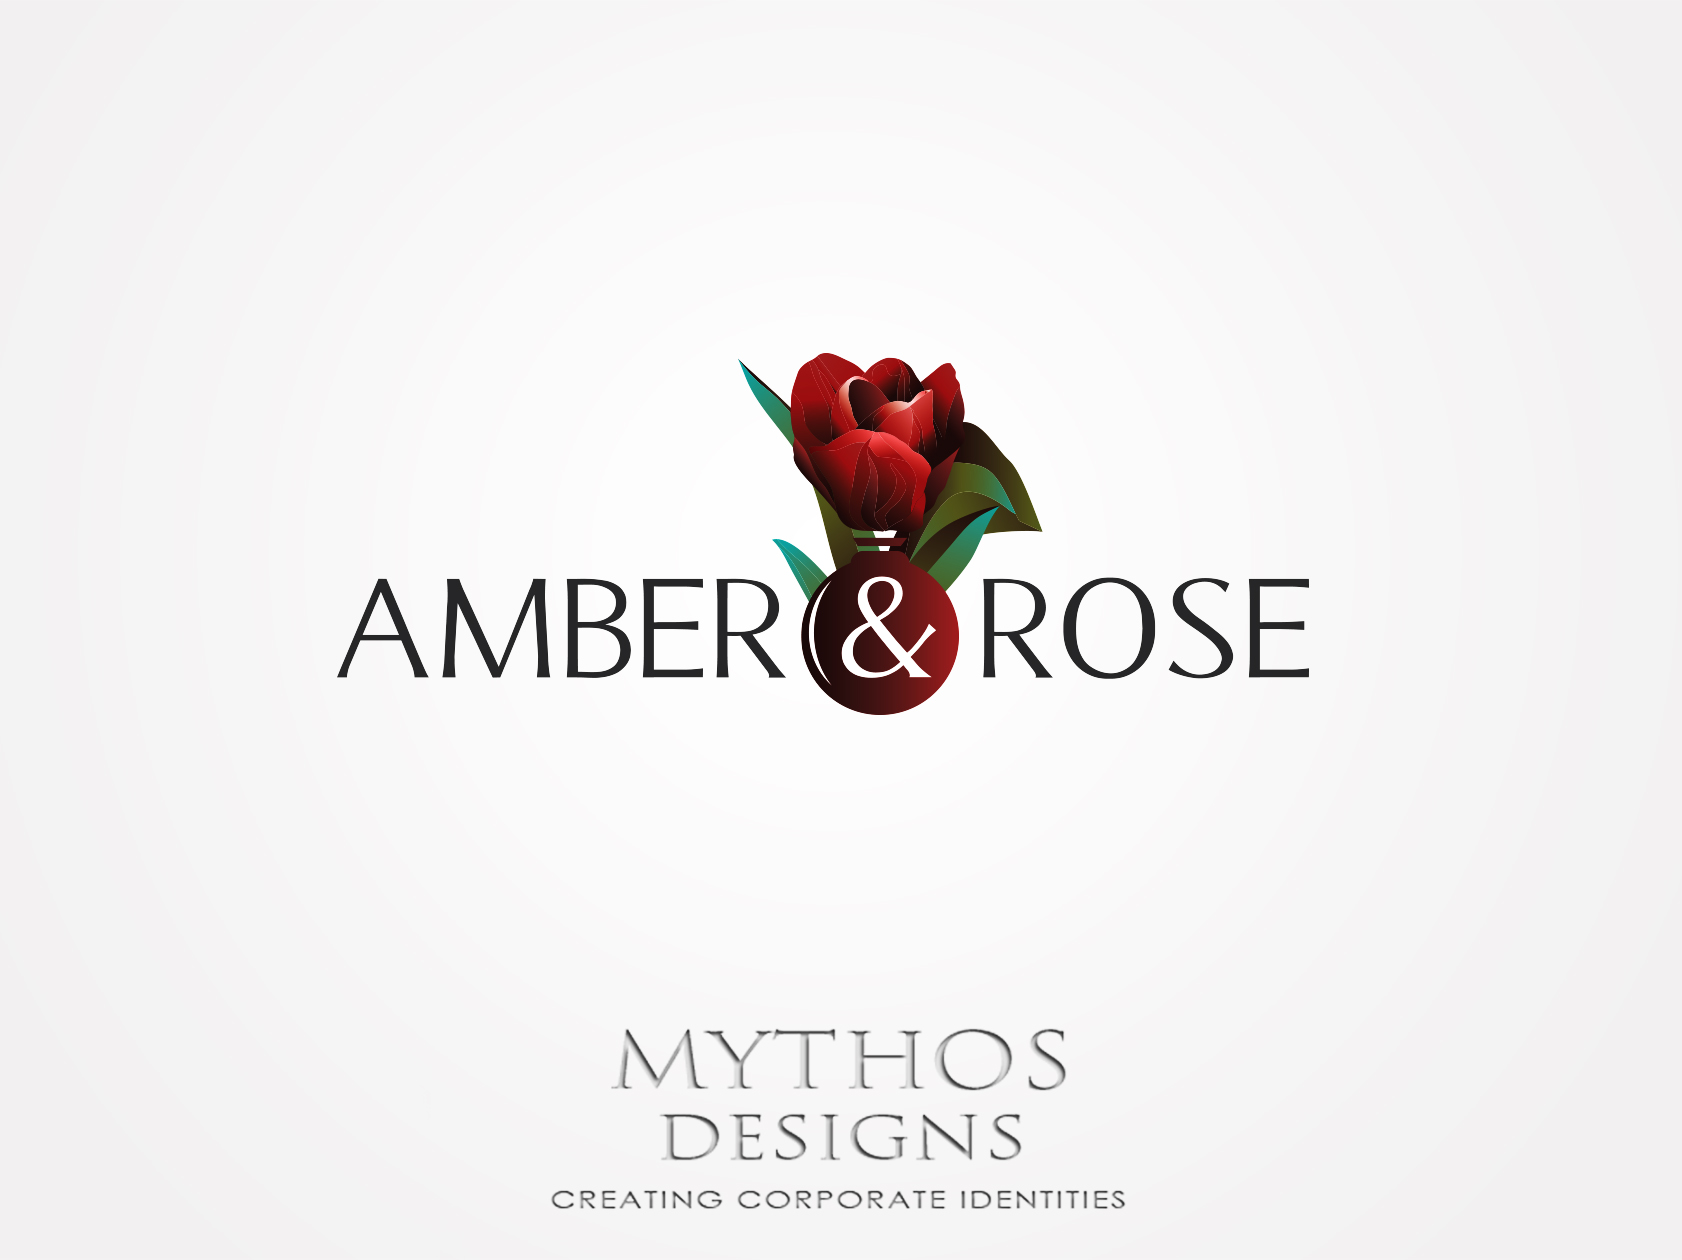 Logo Design by Mythos Designs - Entry No. 81 in the Logo Design Contest Creative Logo Design for Amber & Rose.